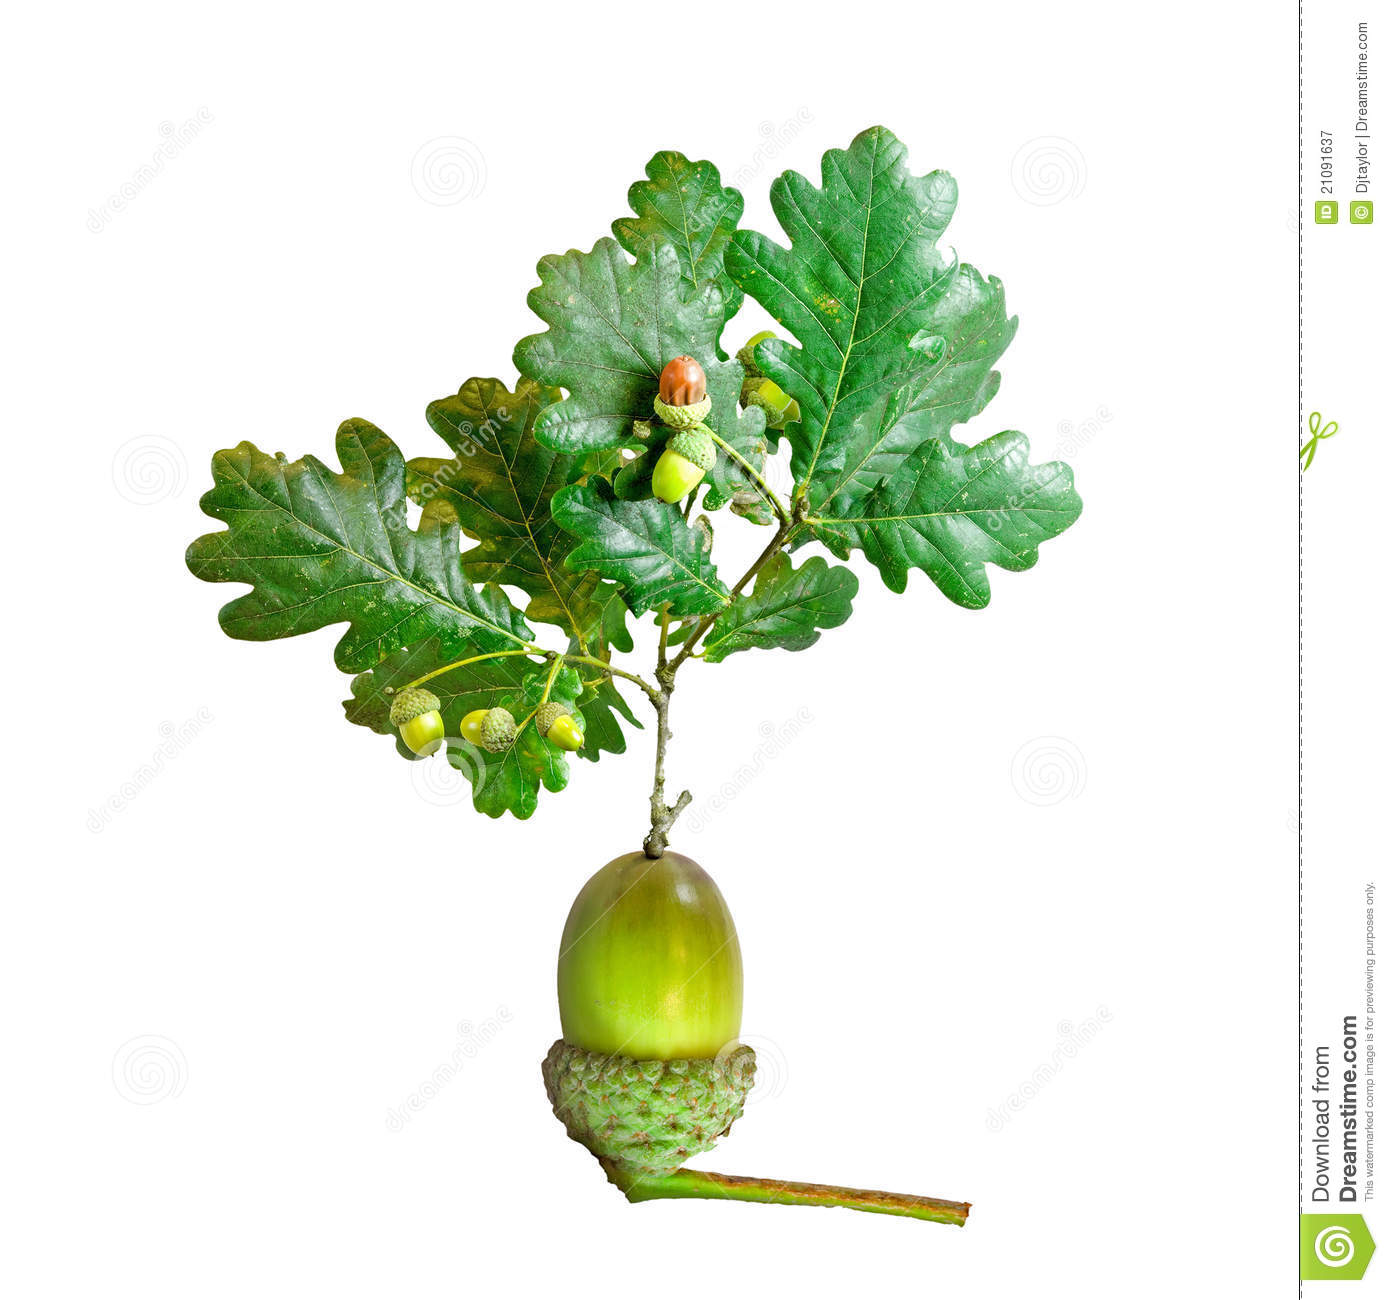 Oak tree growing from acorn royalty free stock photography image